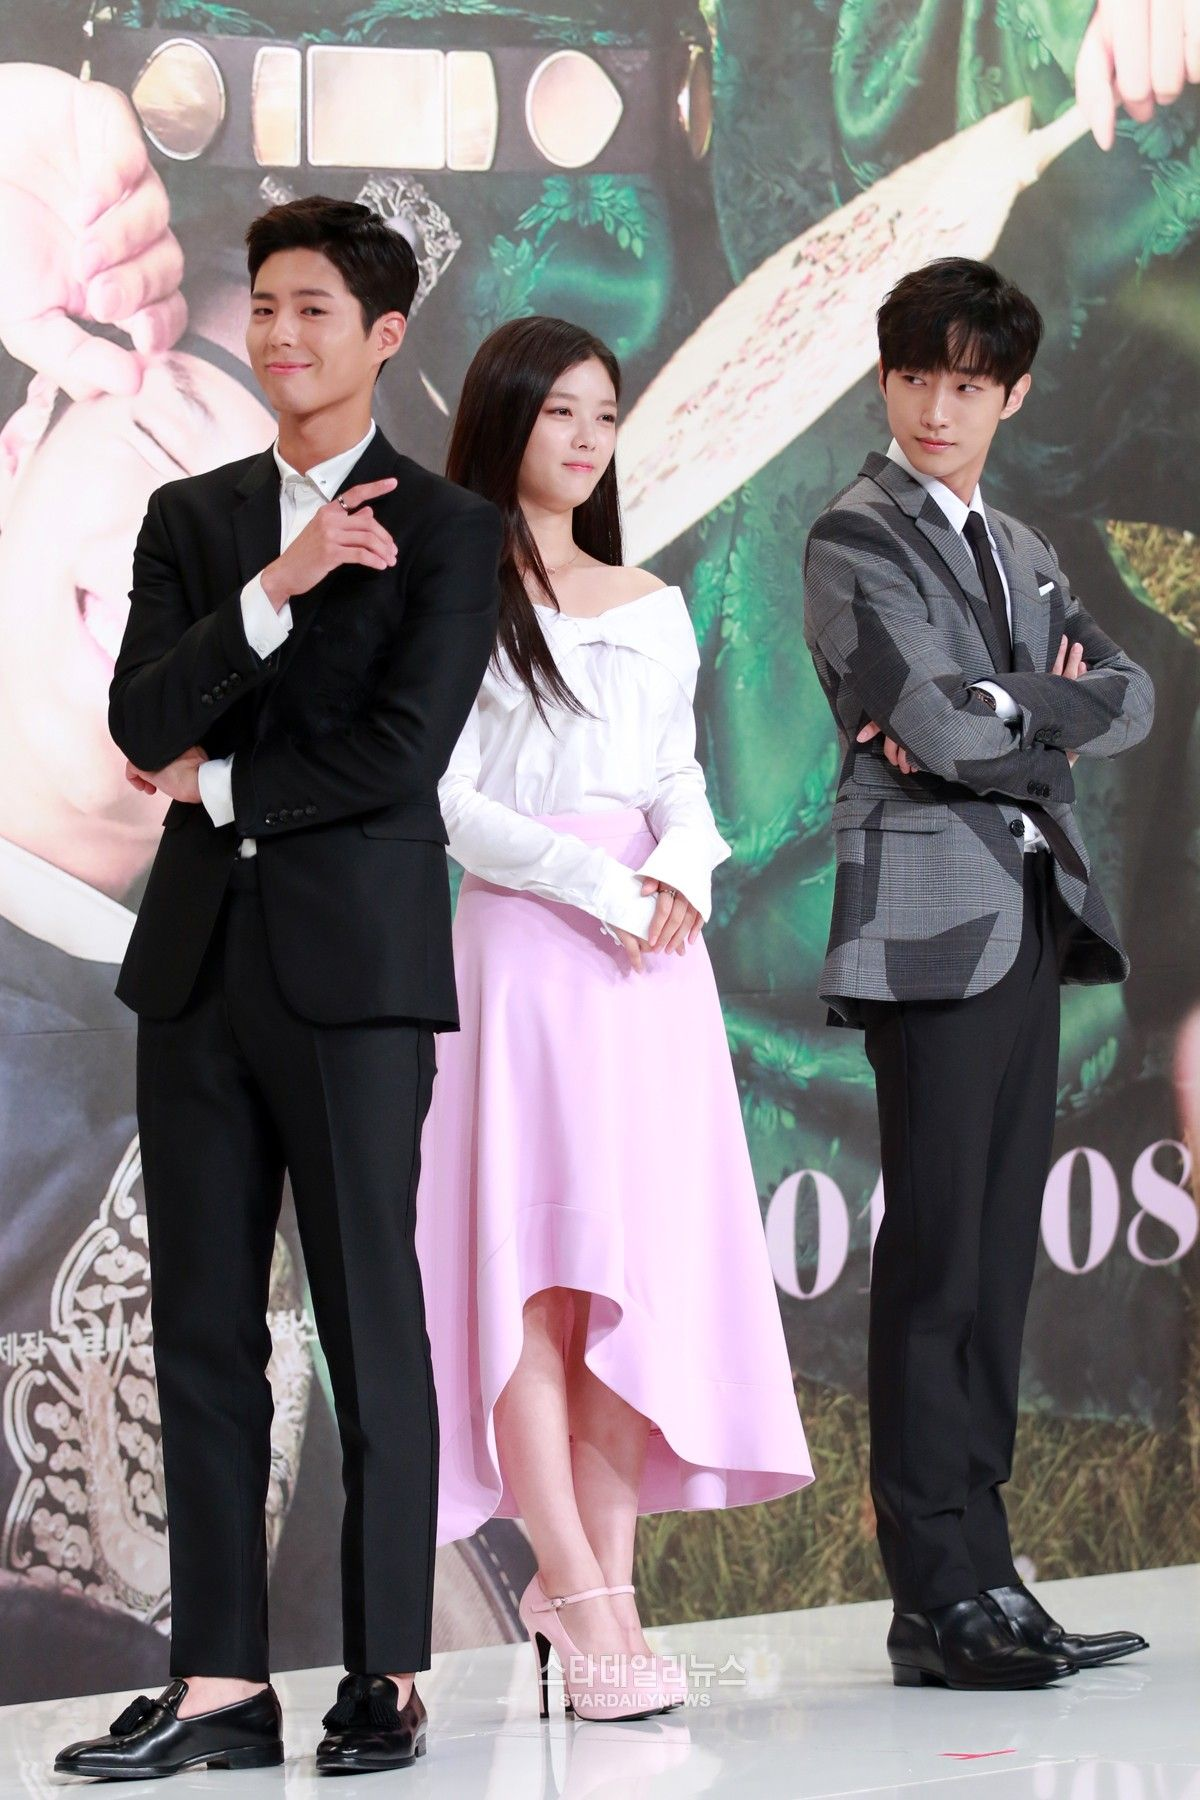 160818 Moonlight Drawn By Clouds Press Conference Love In The Moonlight Kdrama Moonlight Drawn By Clouds Celebrities